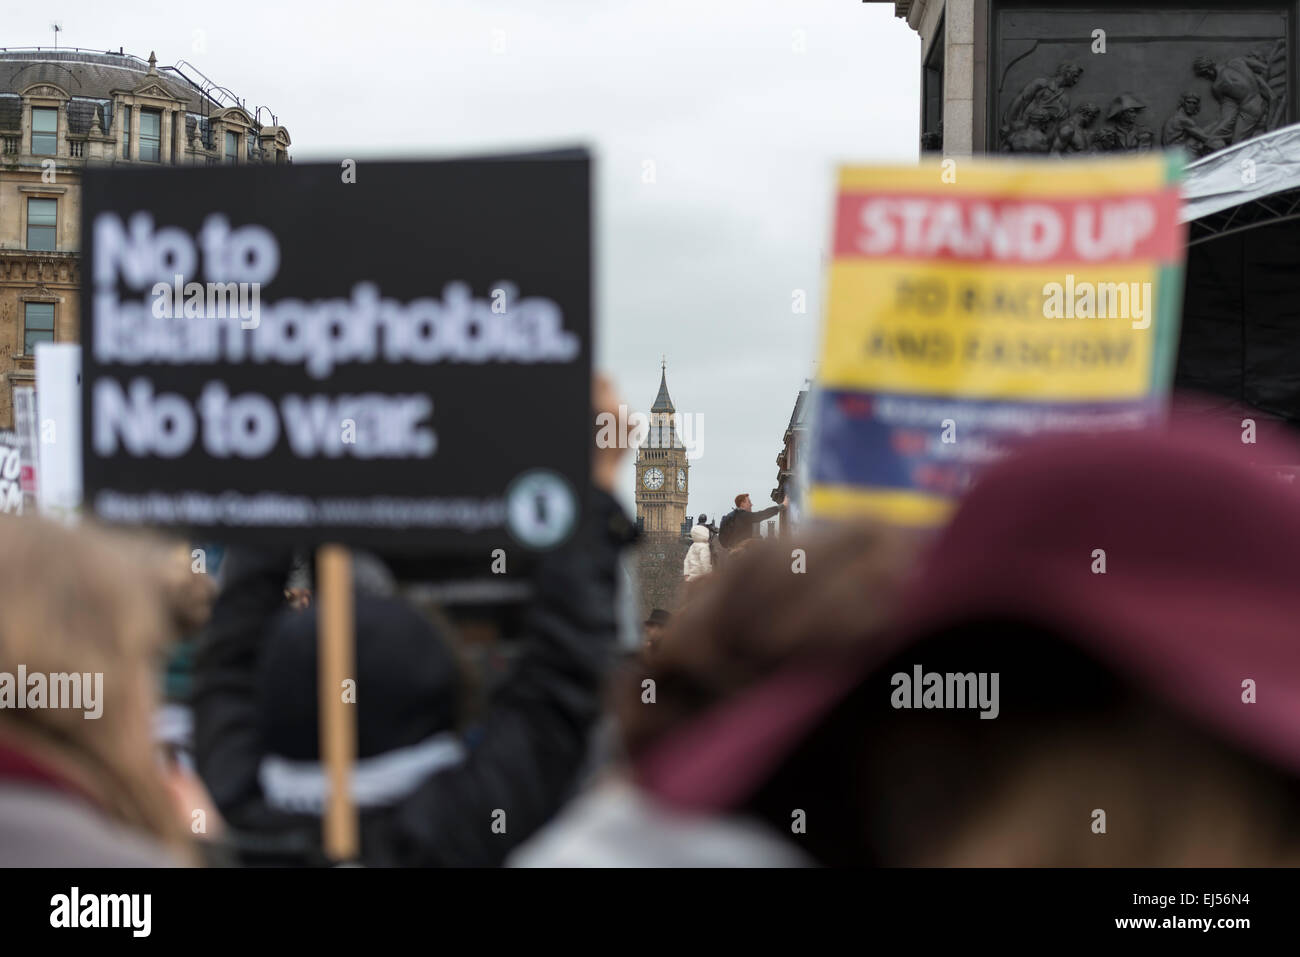 London, 21st March 2015 Anti-racism protesters gather in Trafalgar Square with Big Ben in the background - Stock Image